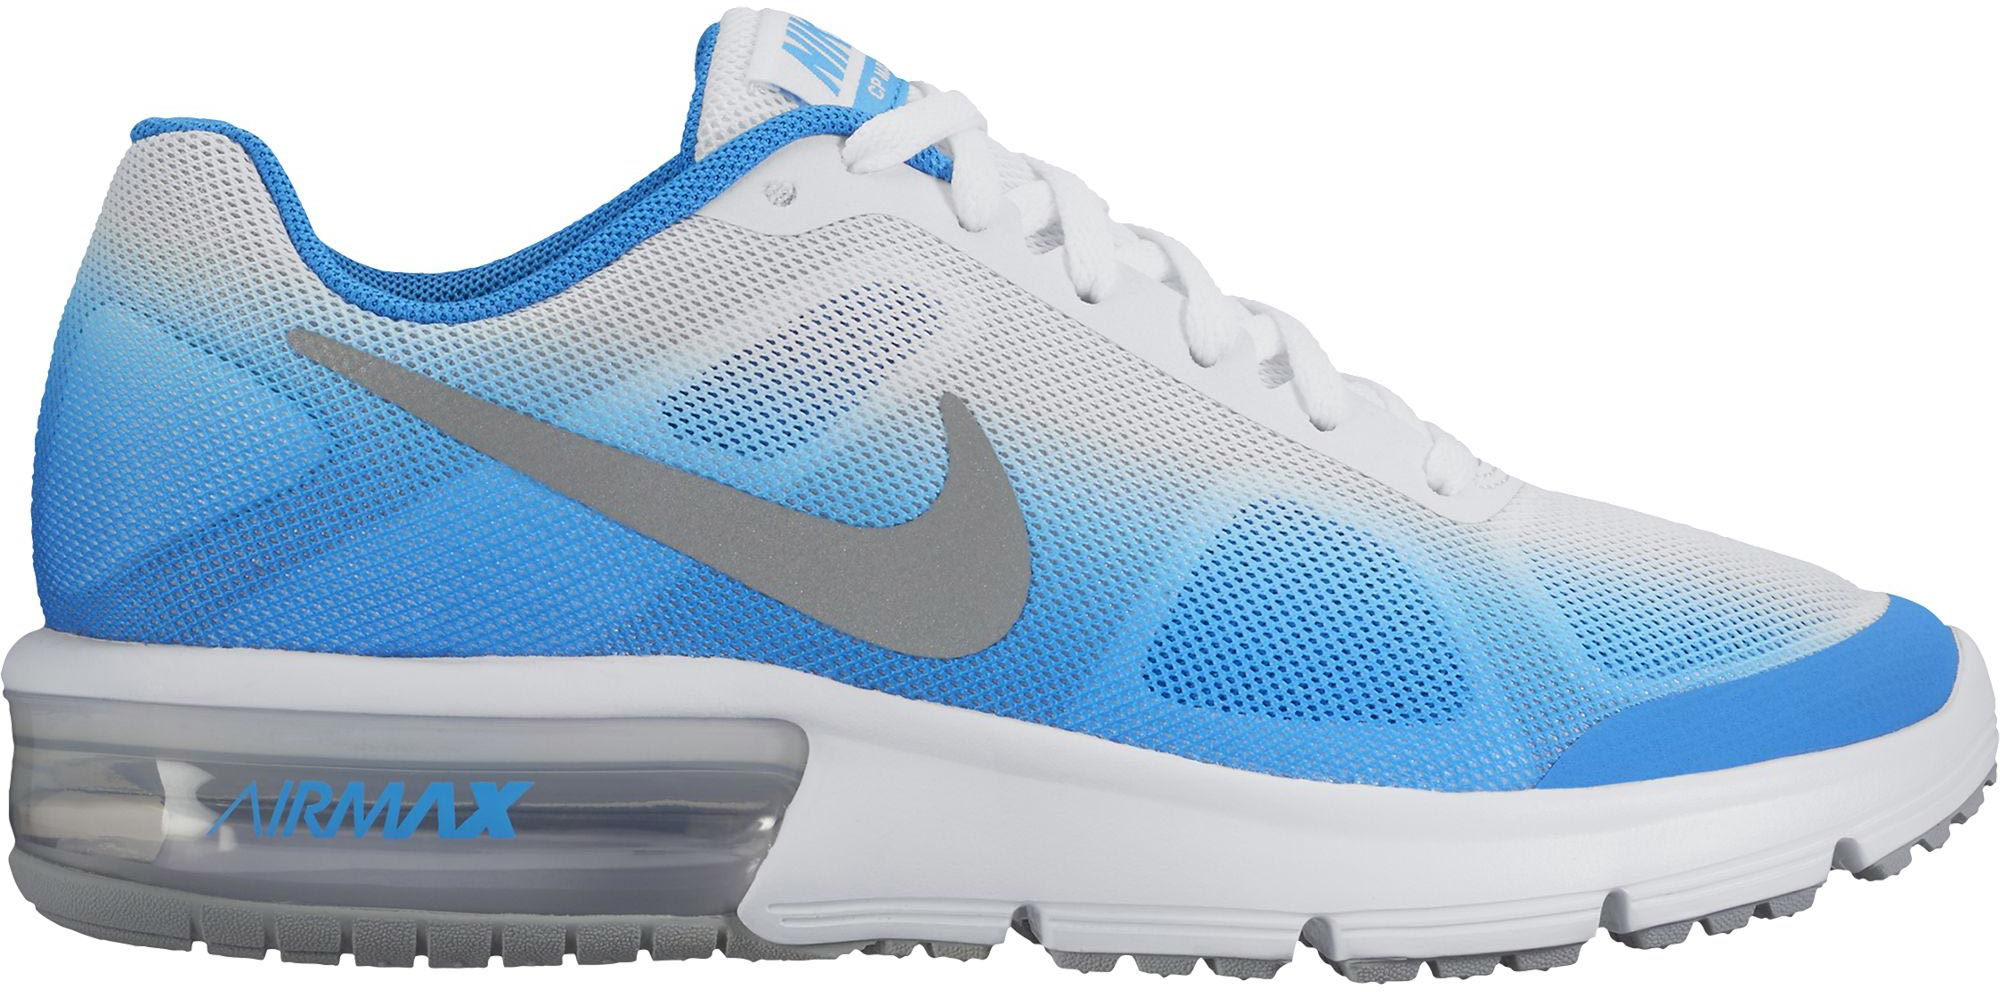 Nike AIR MAX SEQUENT (GS) | sportisimo.com